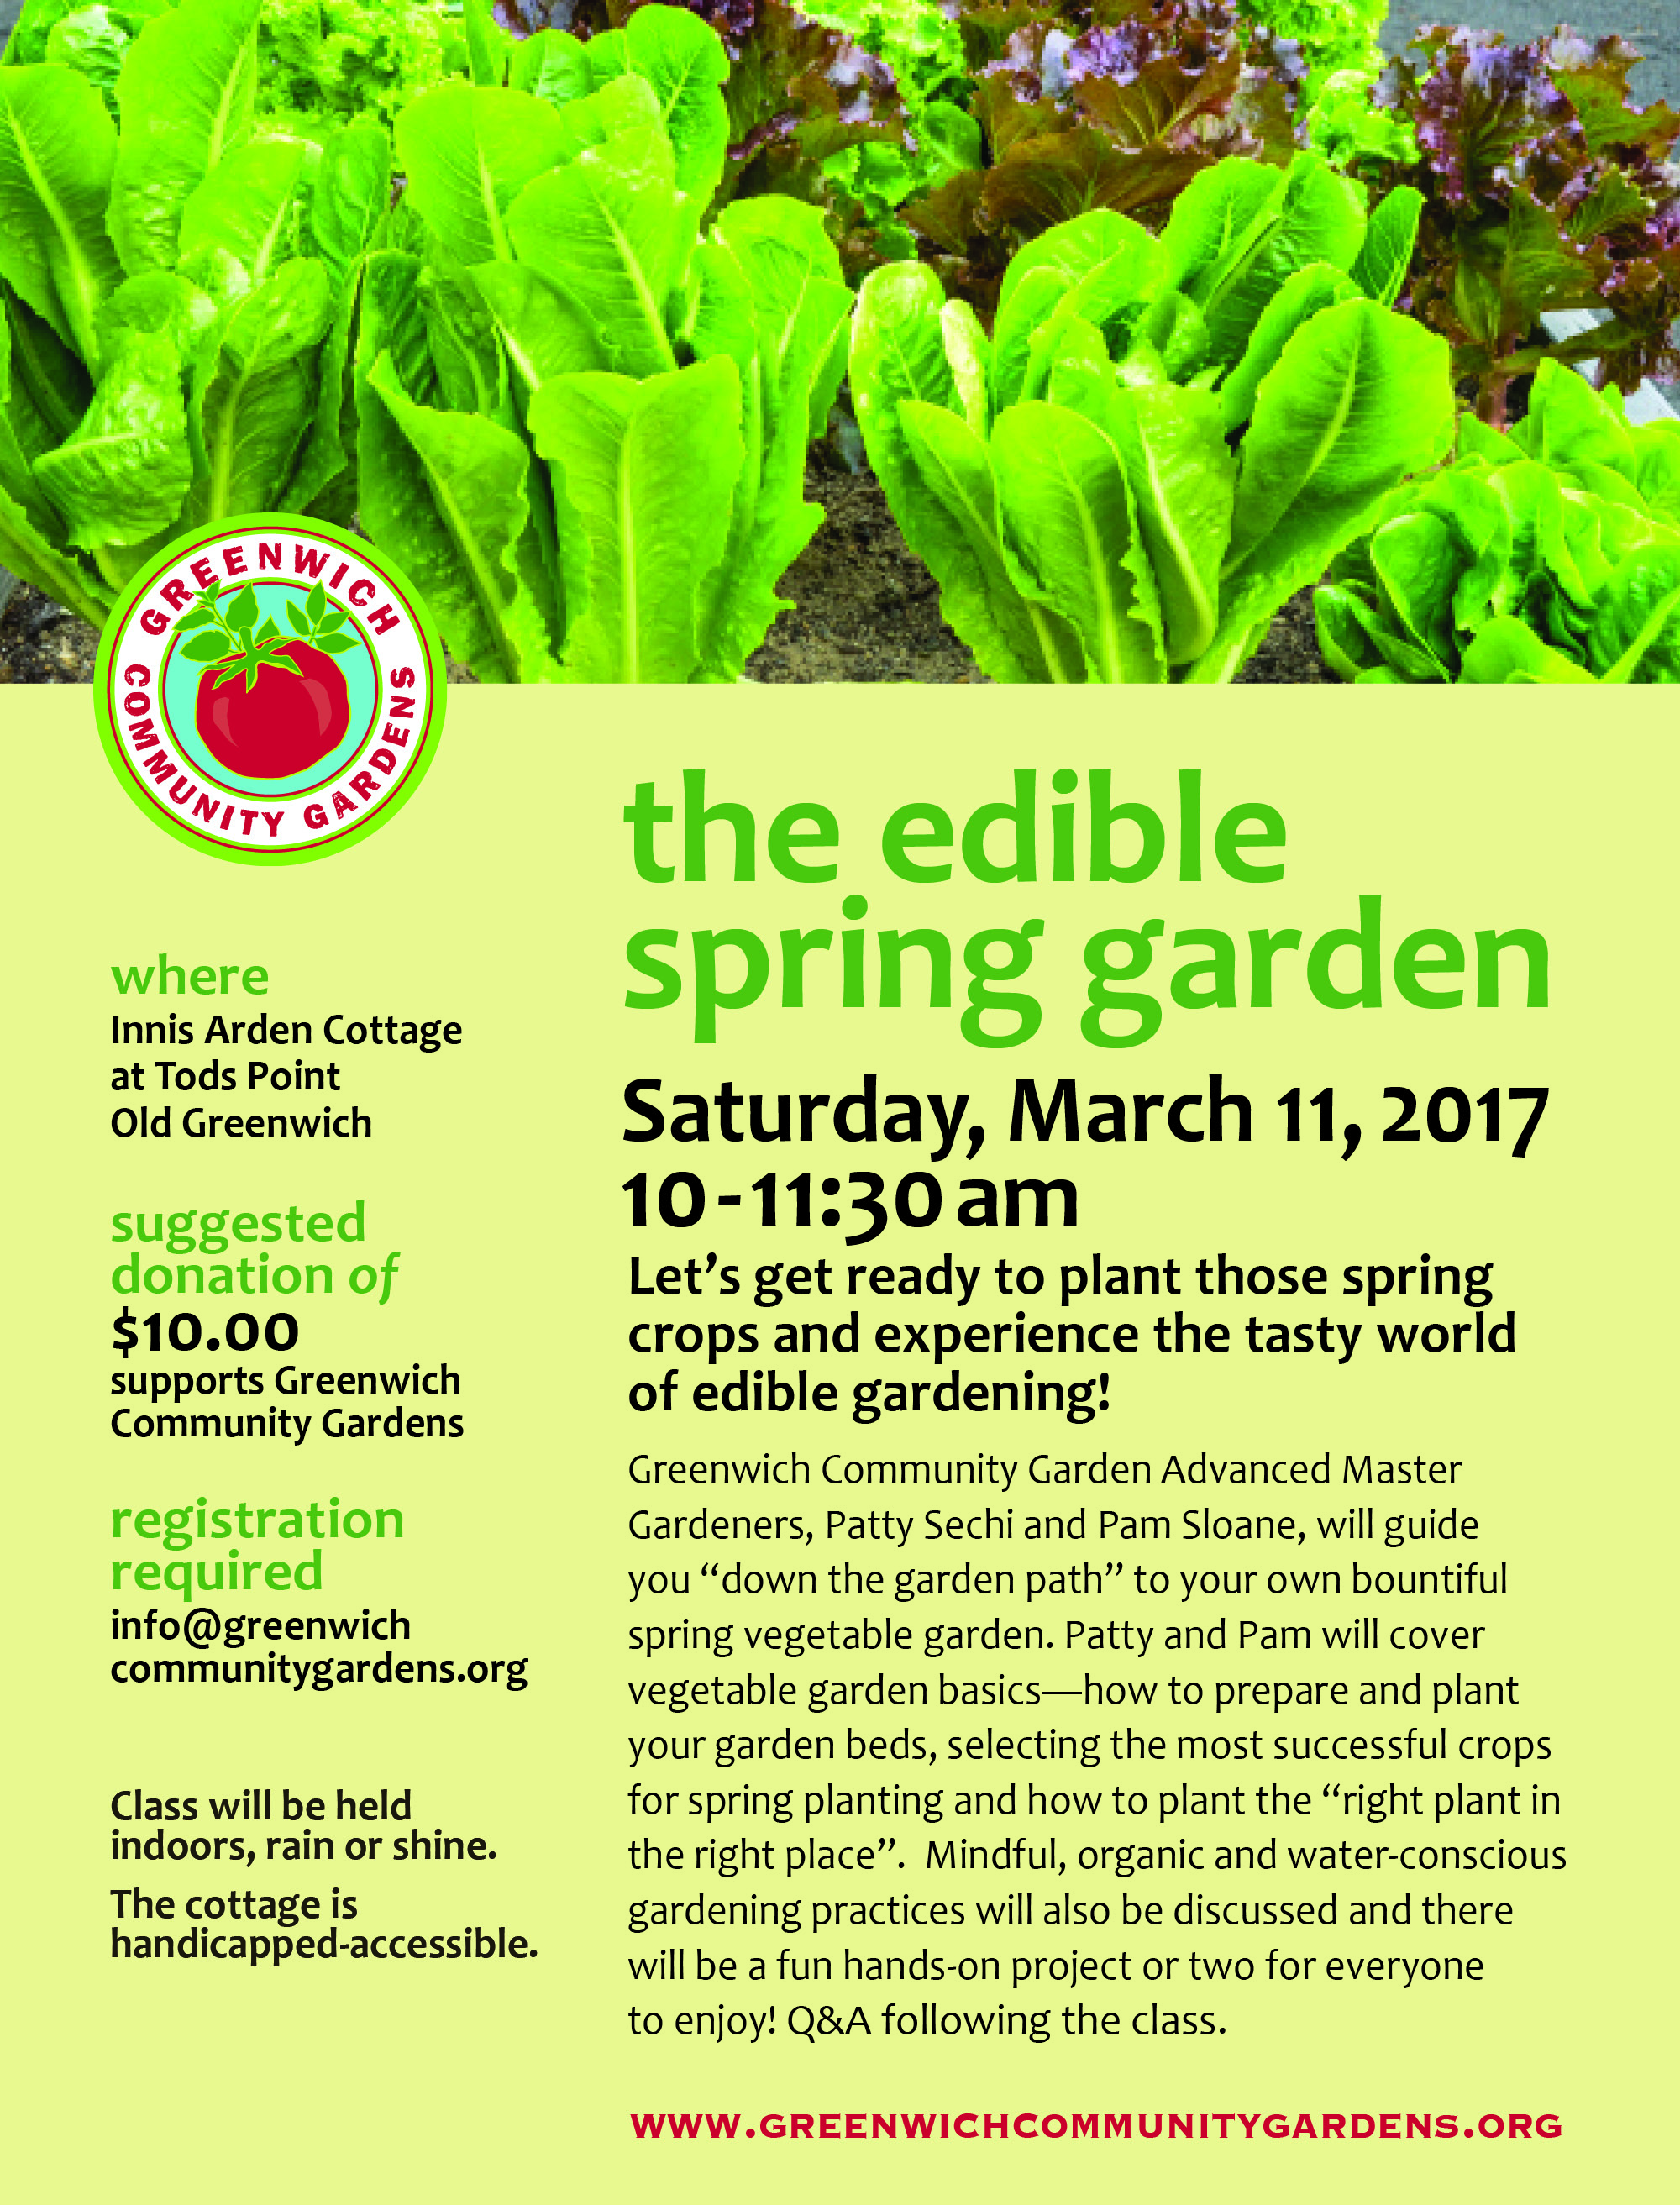 The Edible Spring Garden